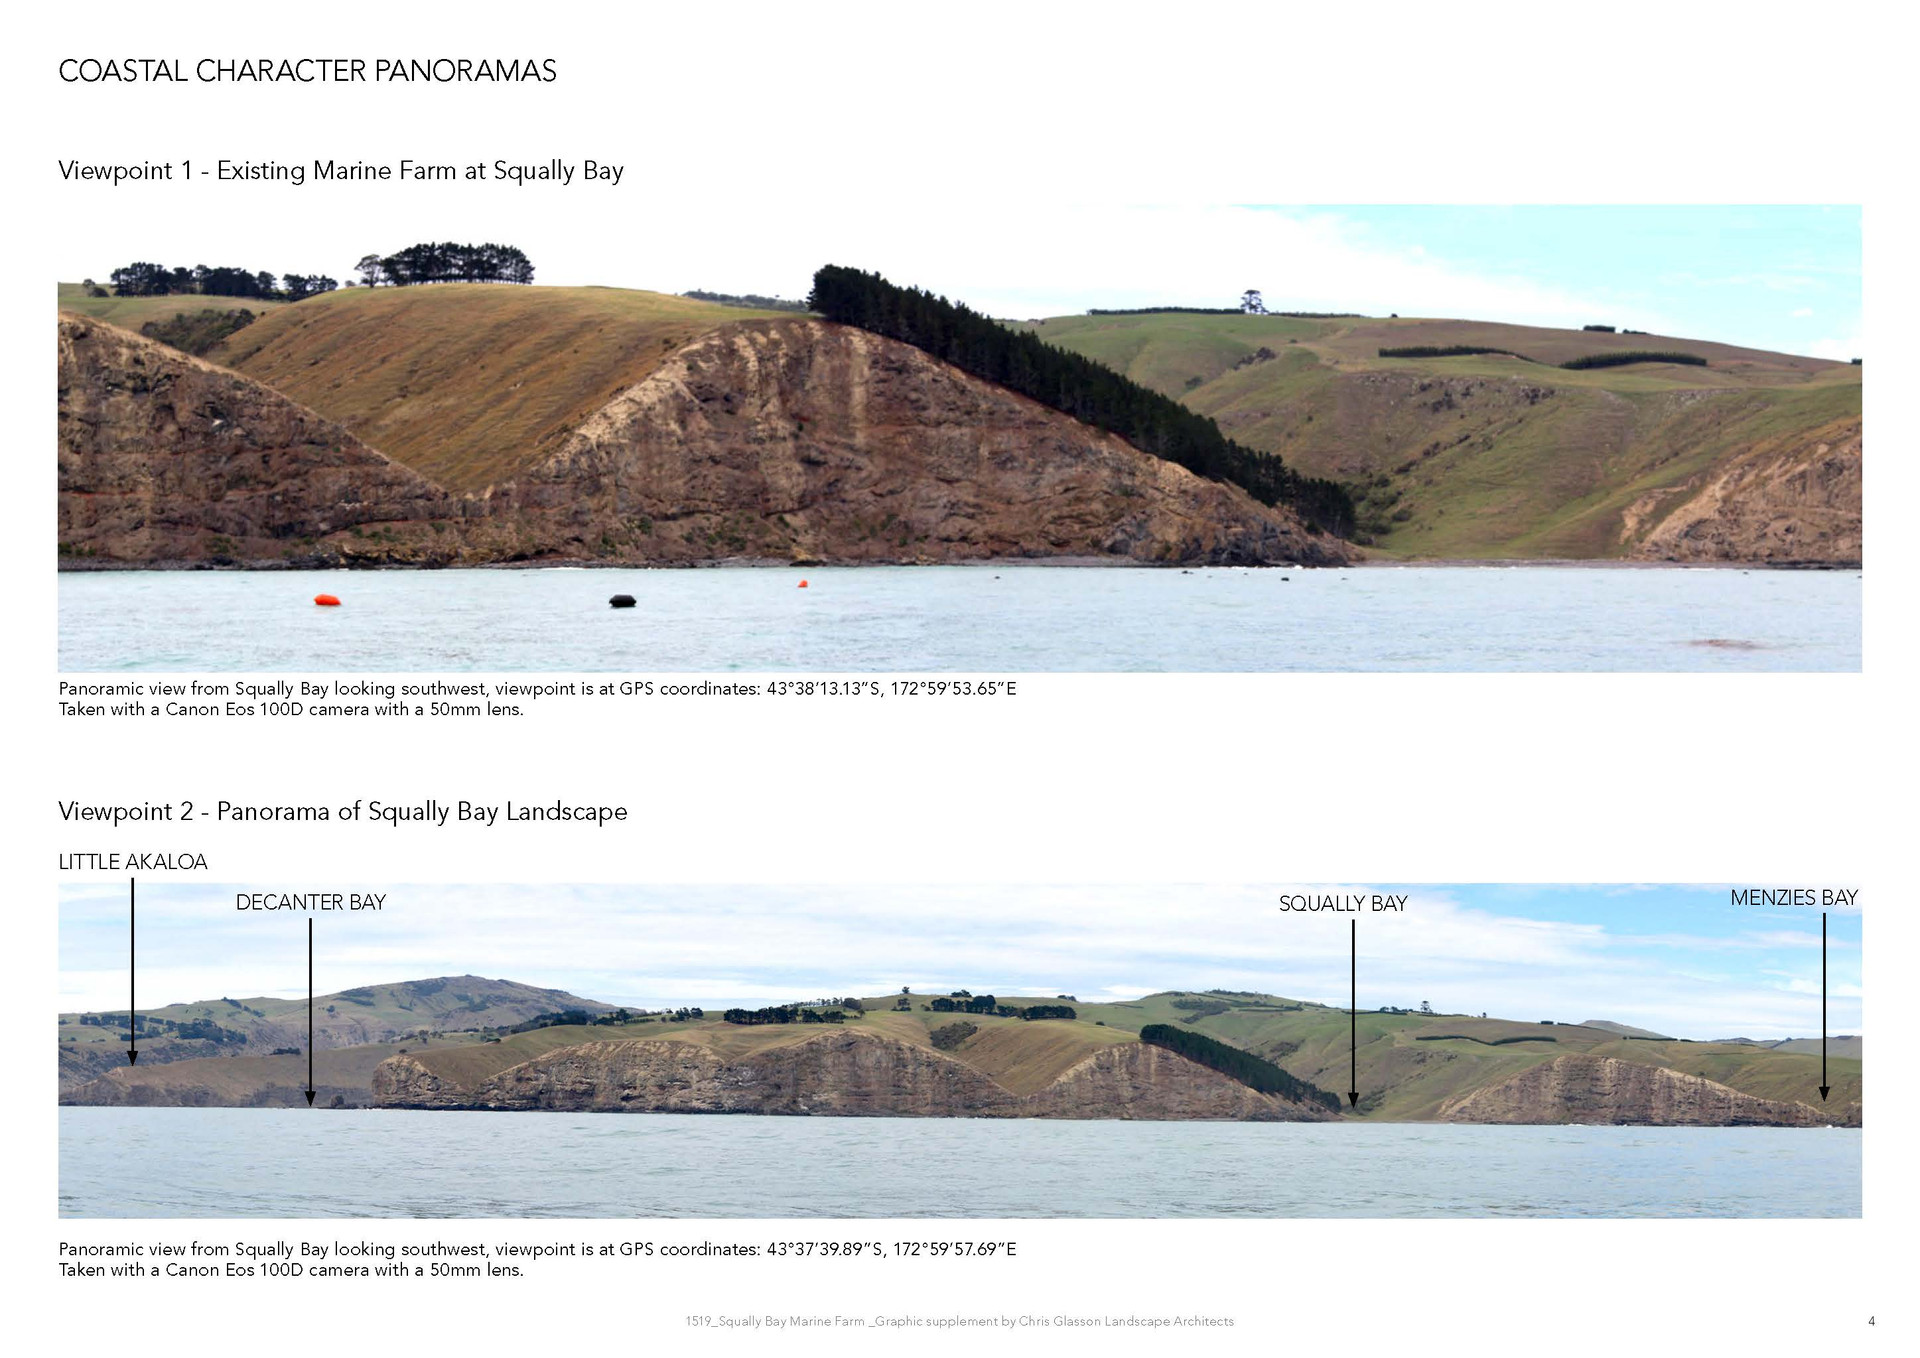 1519_Squally Bay Marine Farm Landscape Assessment Graphic Suppliment_Page_4.jpg